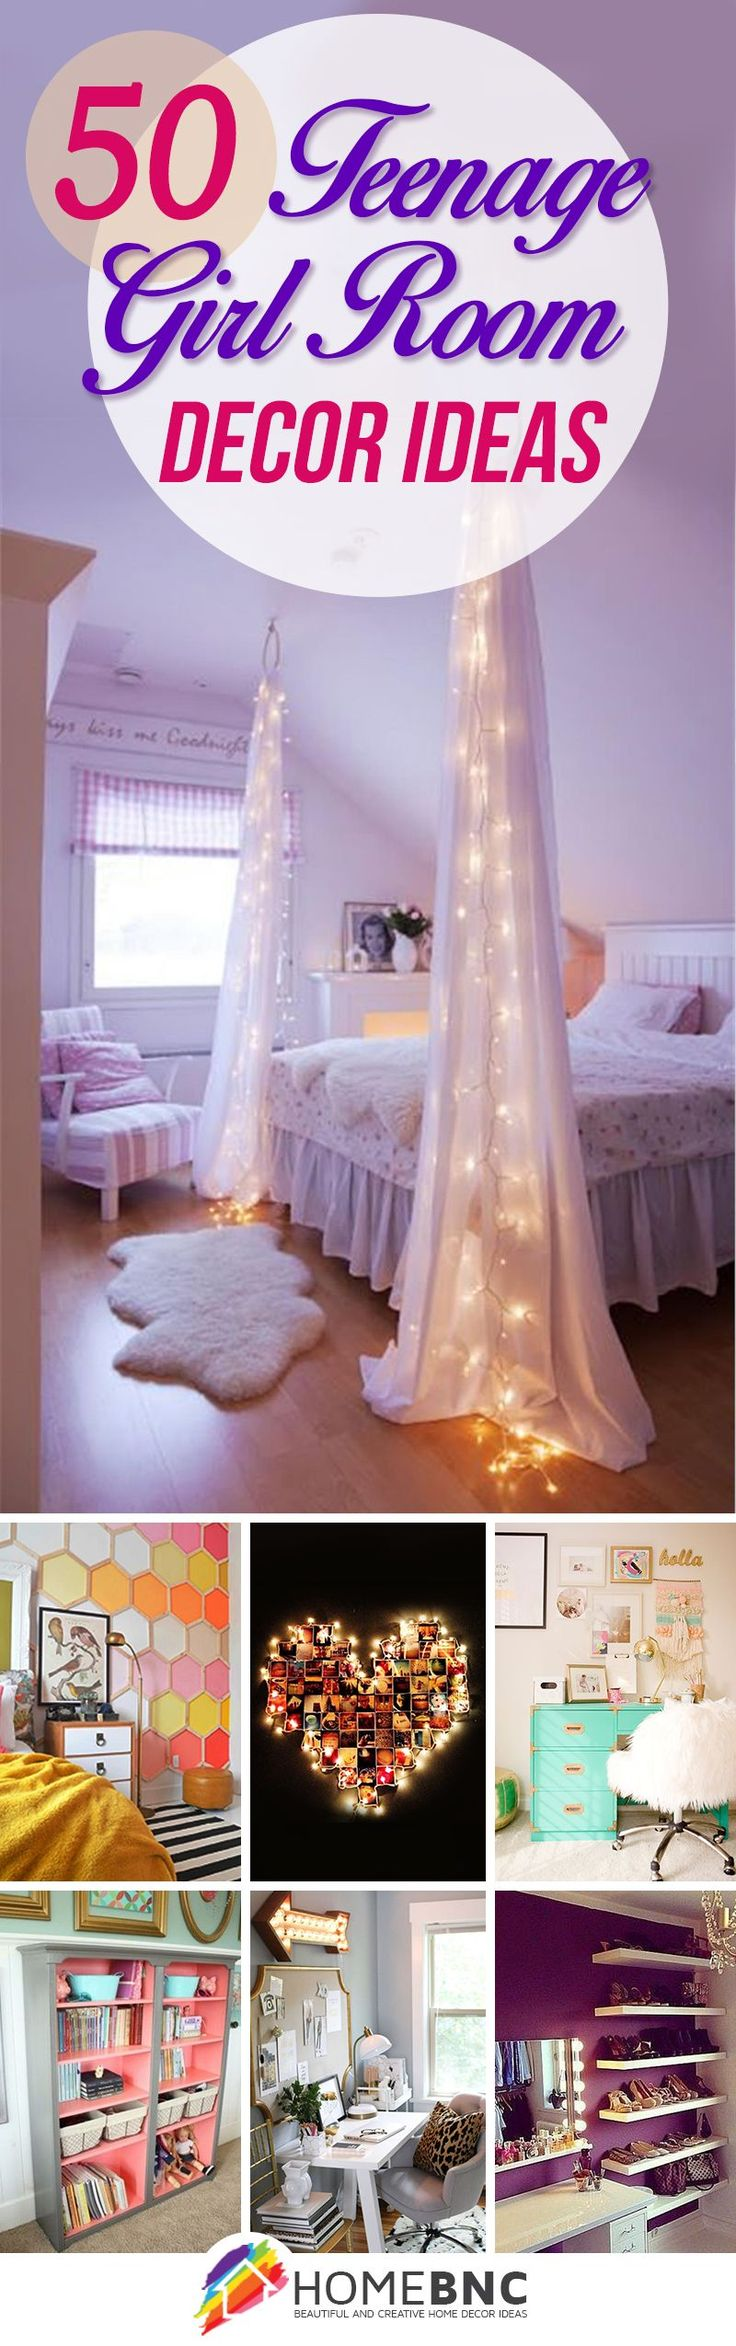 Bedroom decor ideas for girls - 25 Best Ideas About Girls Bedroom Furniture On Pinterest Girls Bedroom Ideas Ikea Organize Girls Bedrooms And Bedroom Bench Ikea